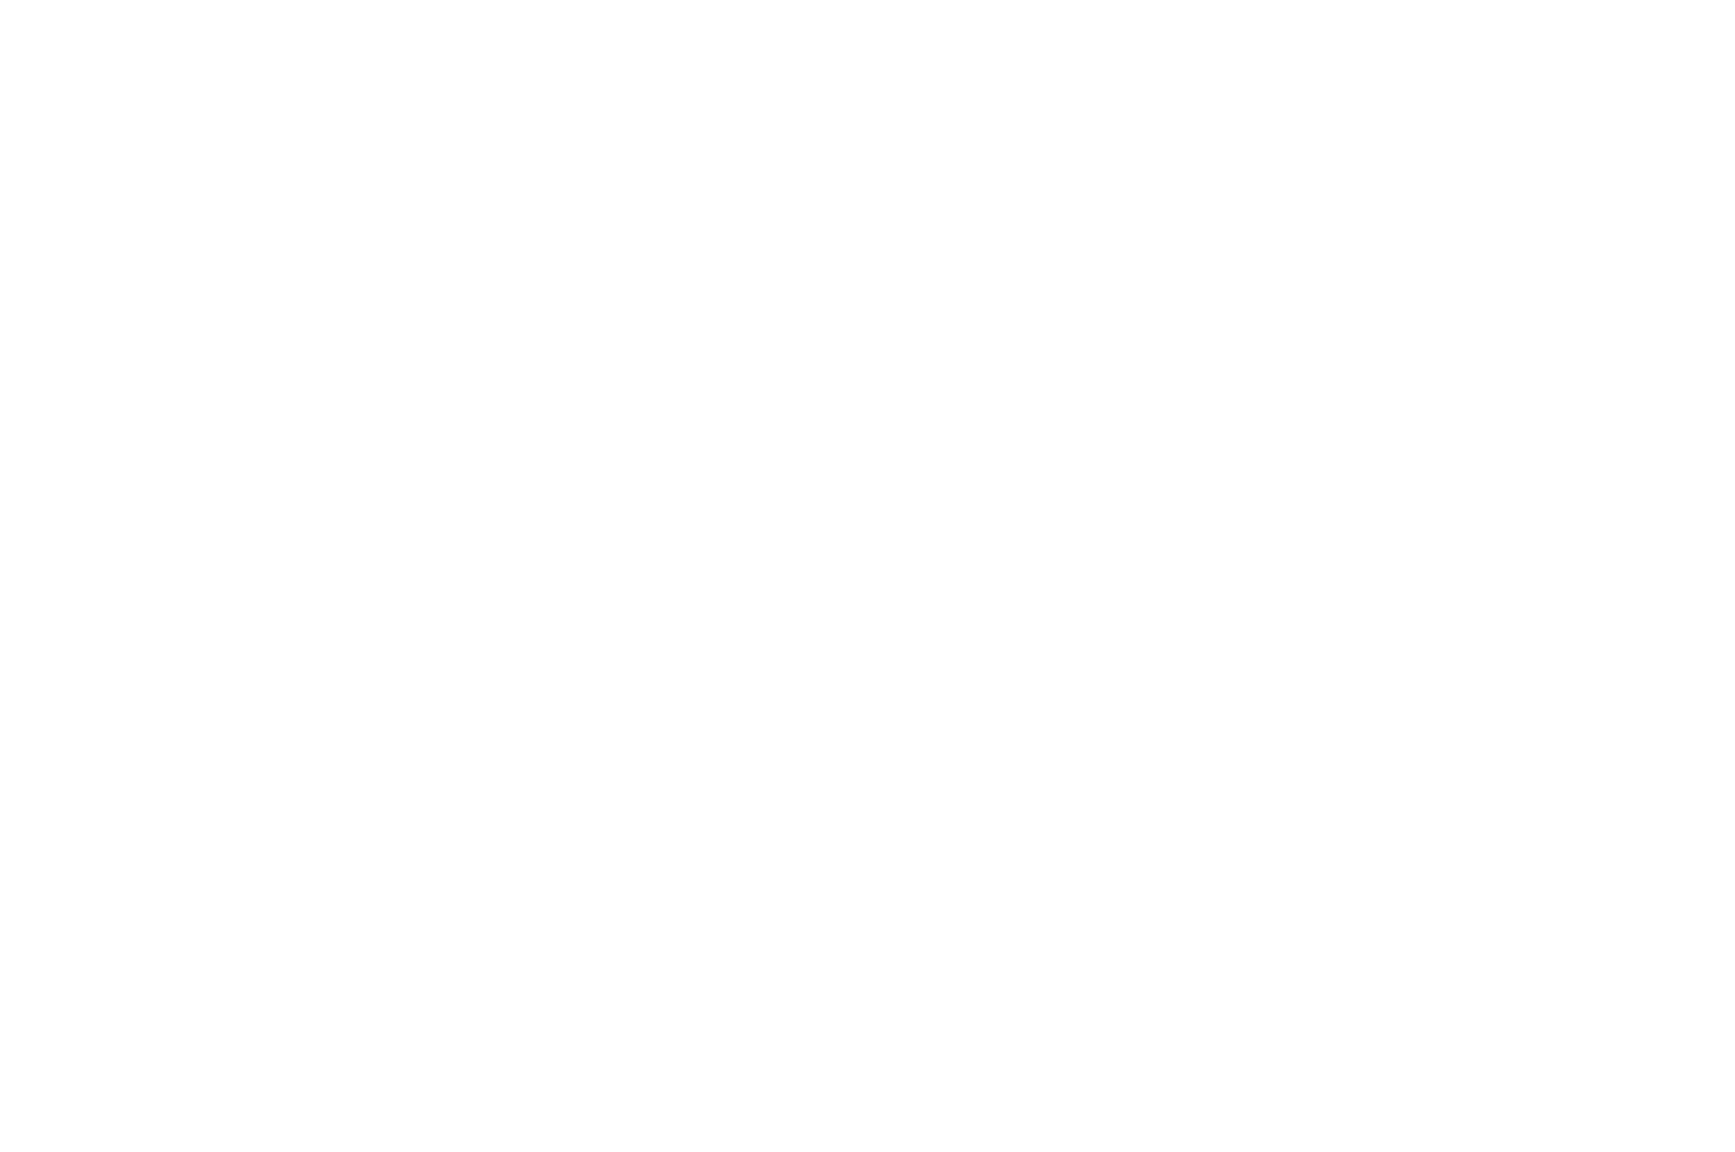 OFFICIAL SELECTION - DC Independent Film Festival - 2018.png